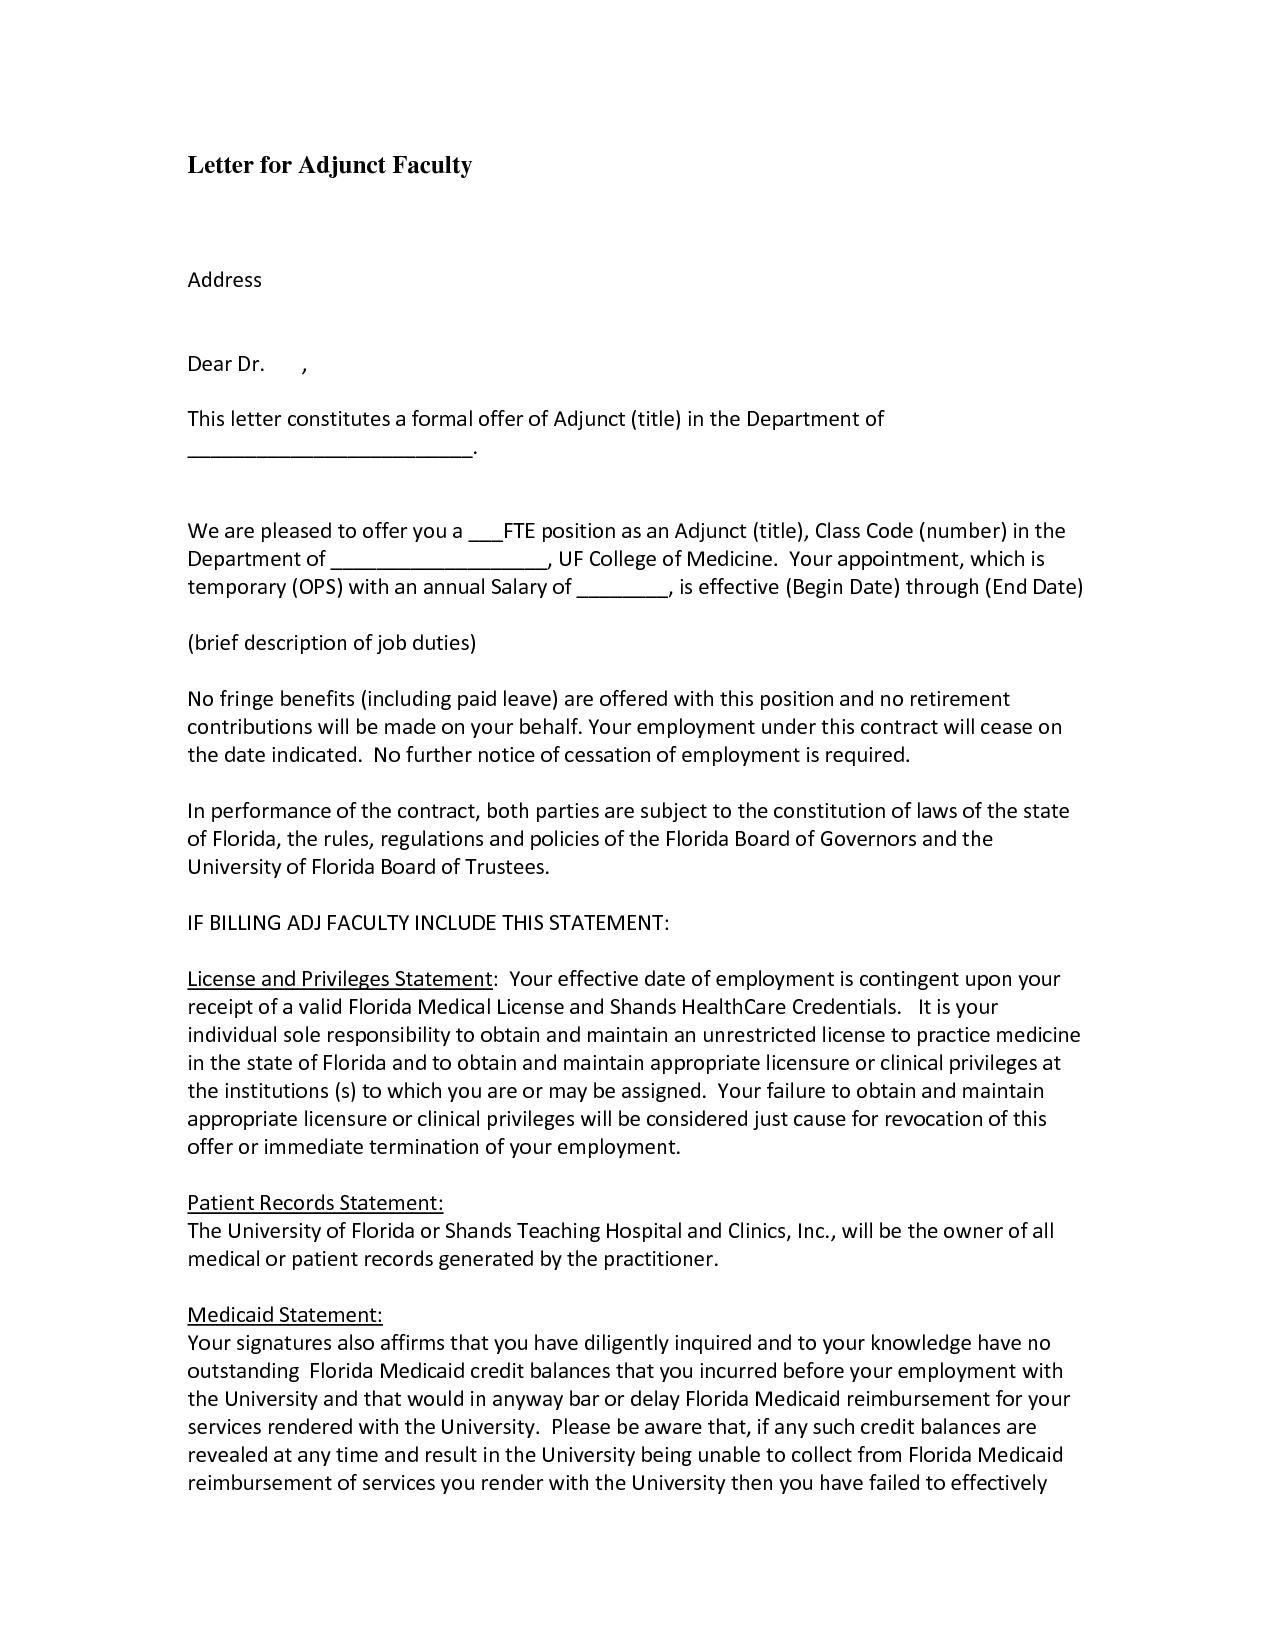 Get Formatting Tips For Composing Job Winning Cover Letter Design